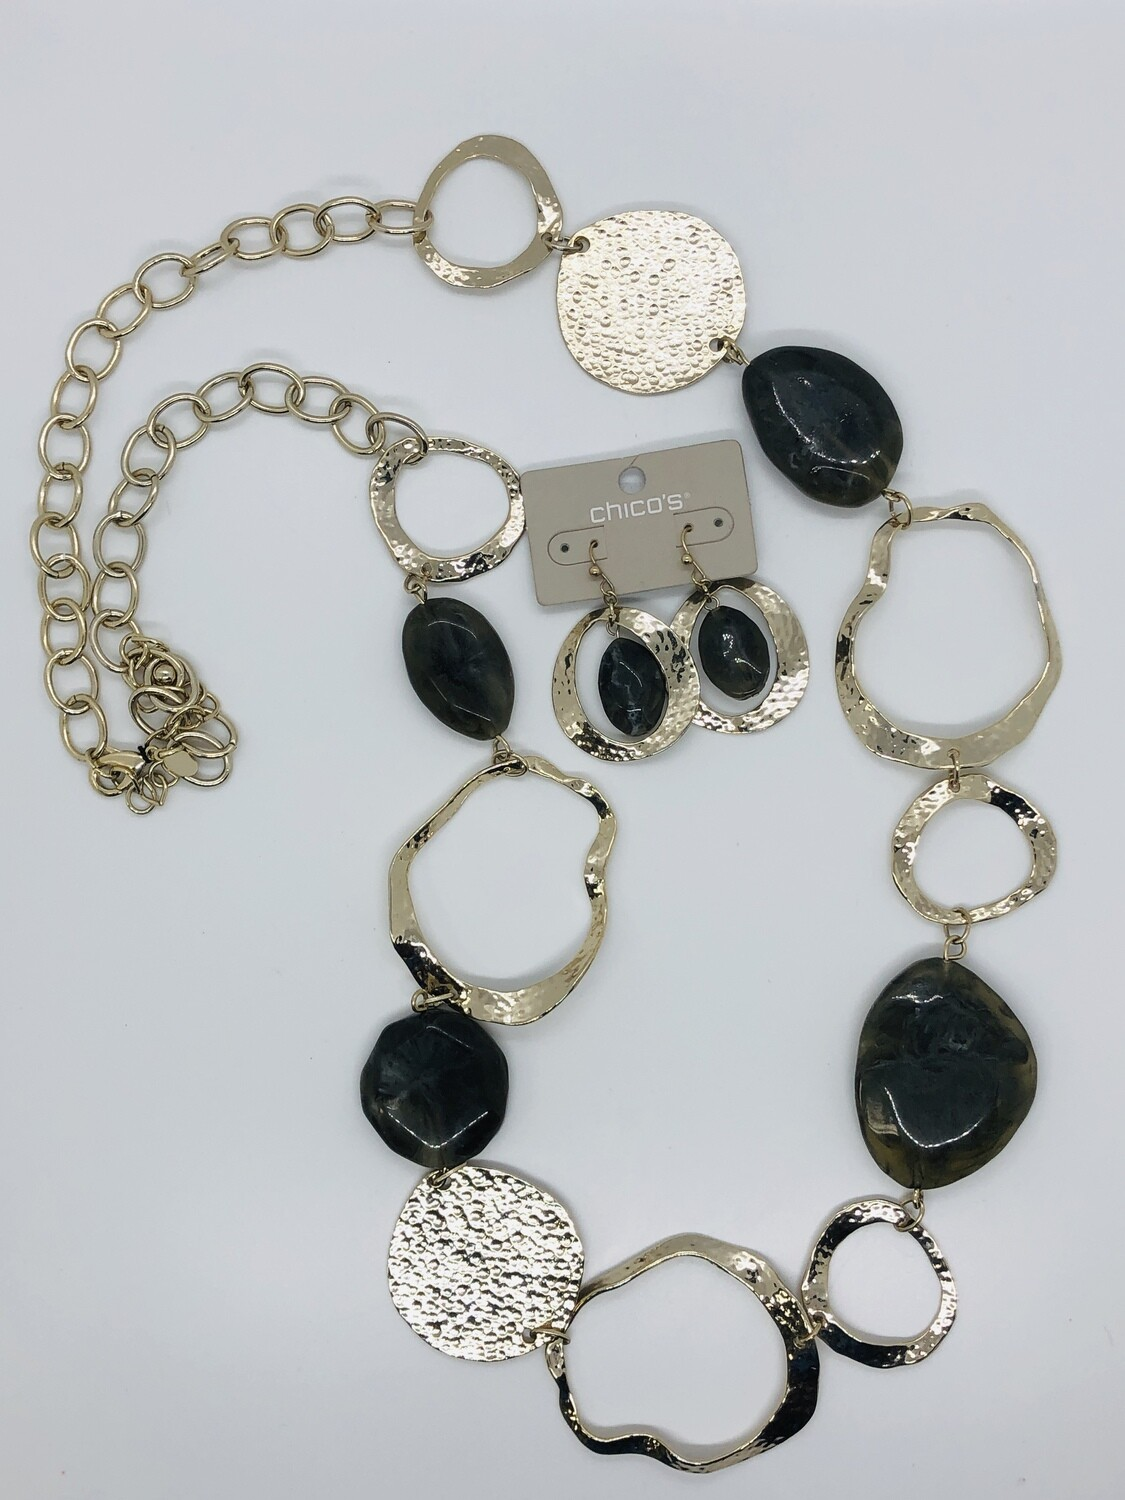 2pc CHICO'S Gold & Gray Stone Necklace(Belt) & Matching Earrings